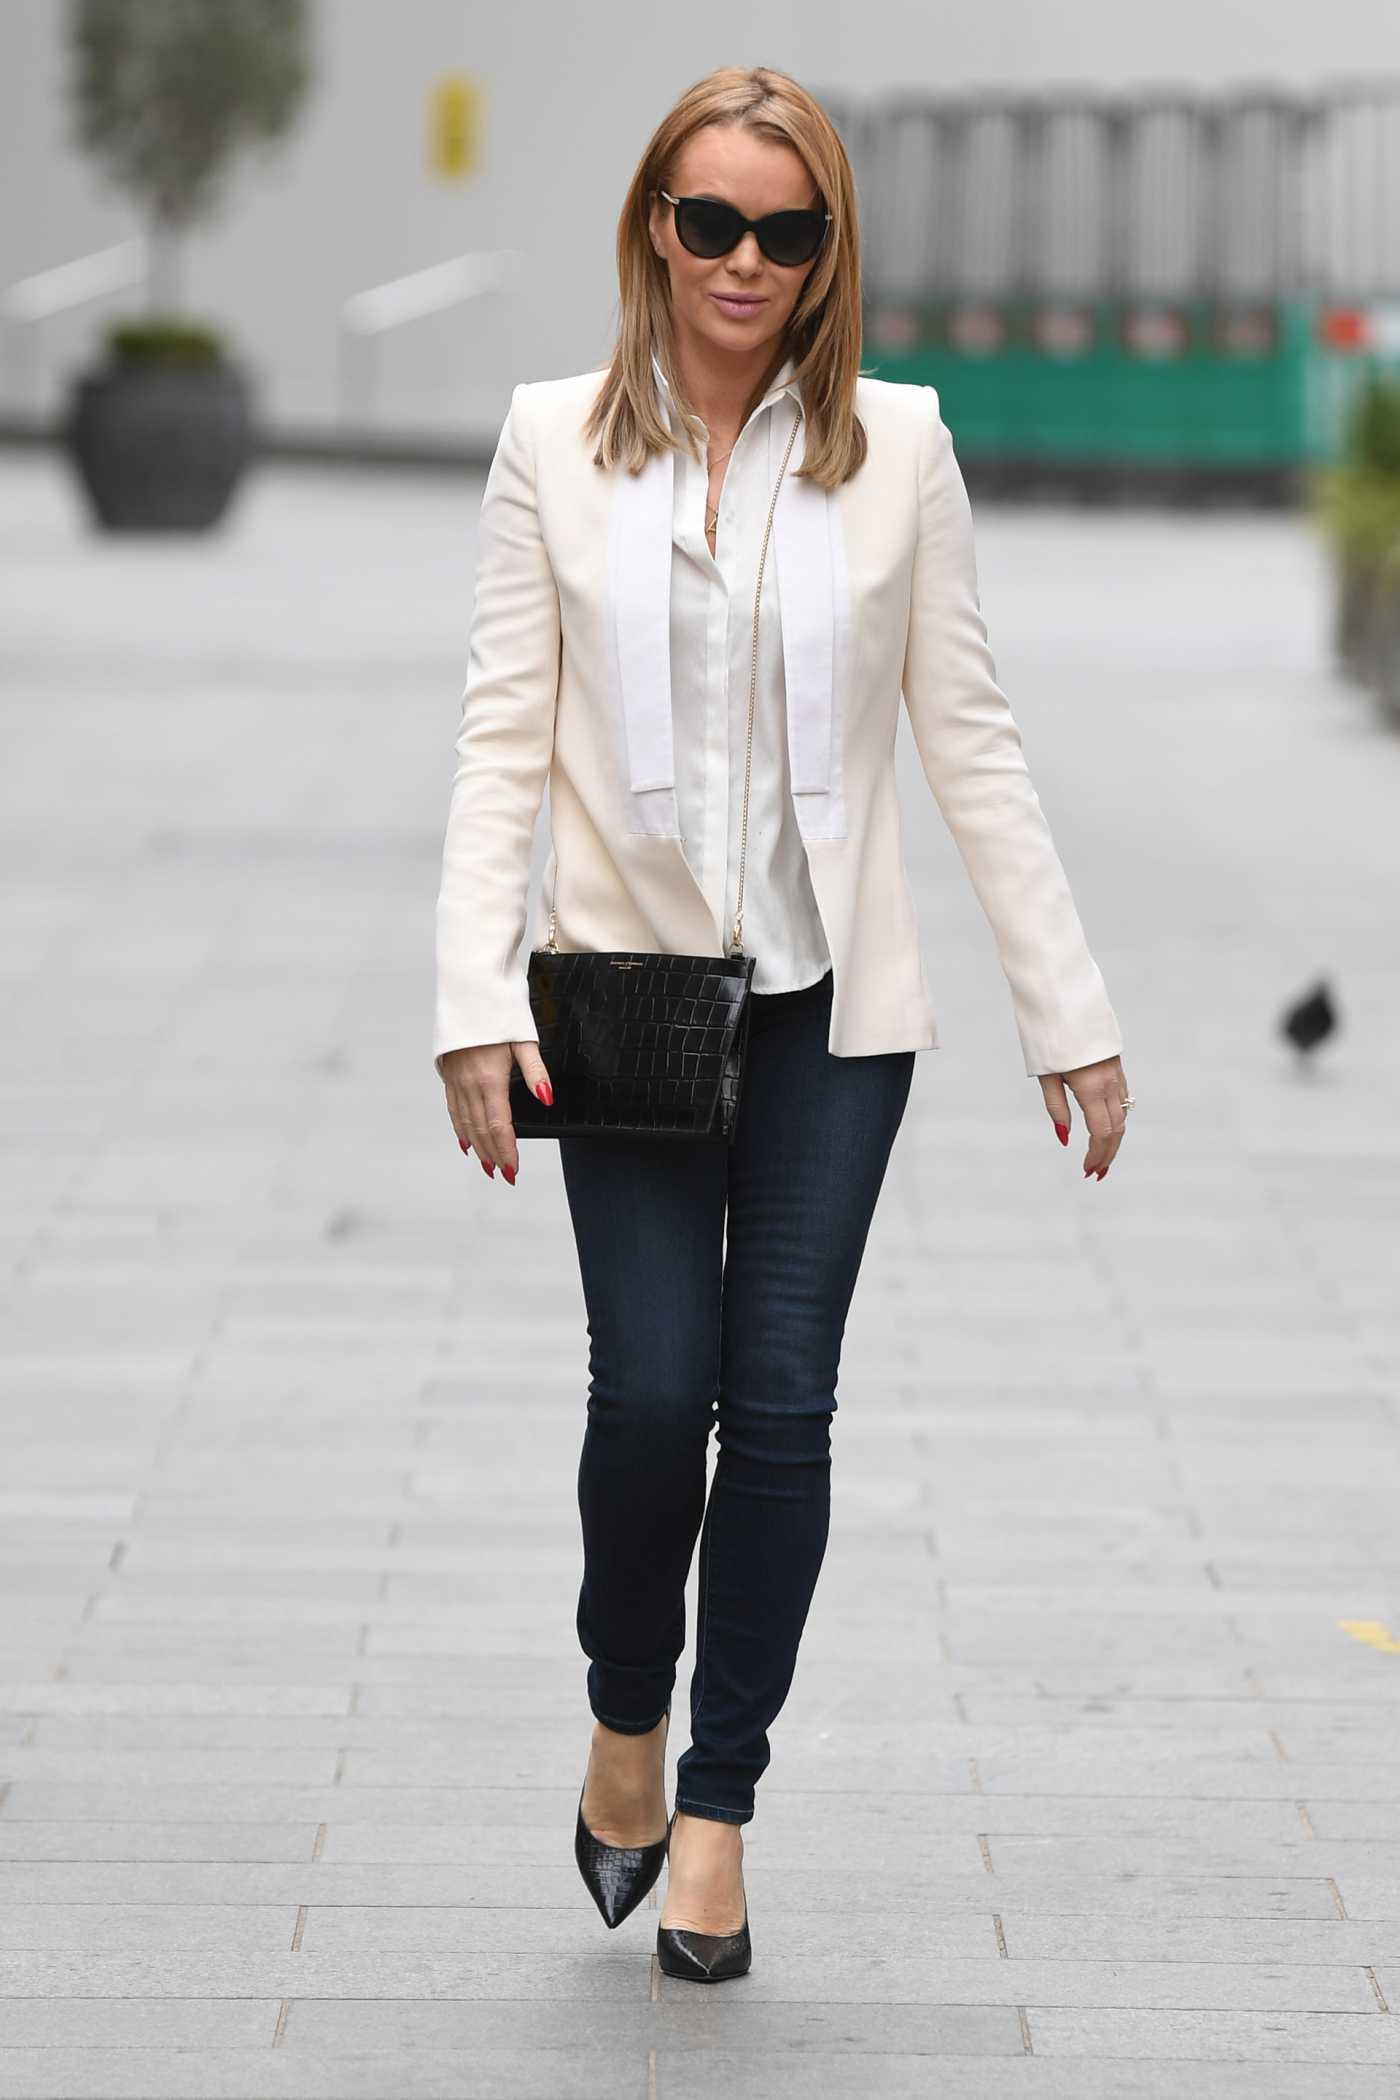 Amanda Holden in a White Blazer Leaves the Global Studios in London 01/10/2021